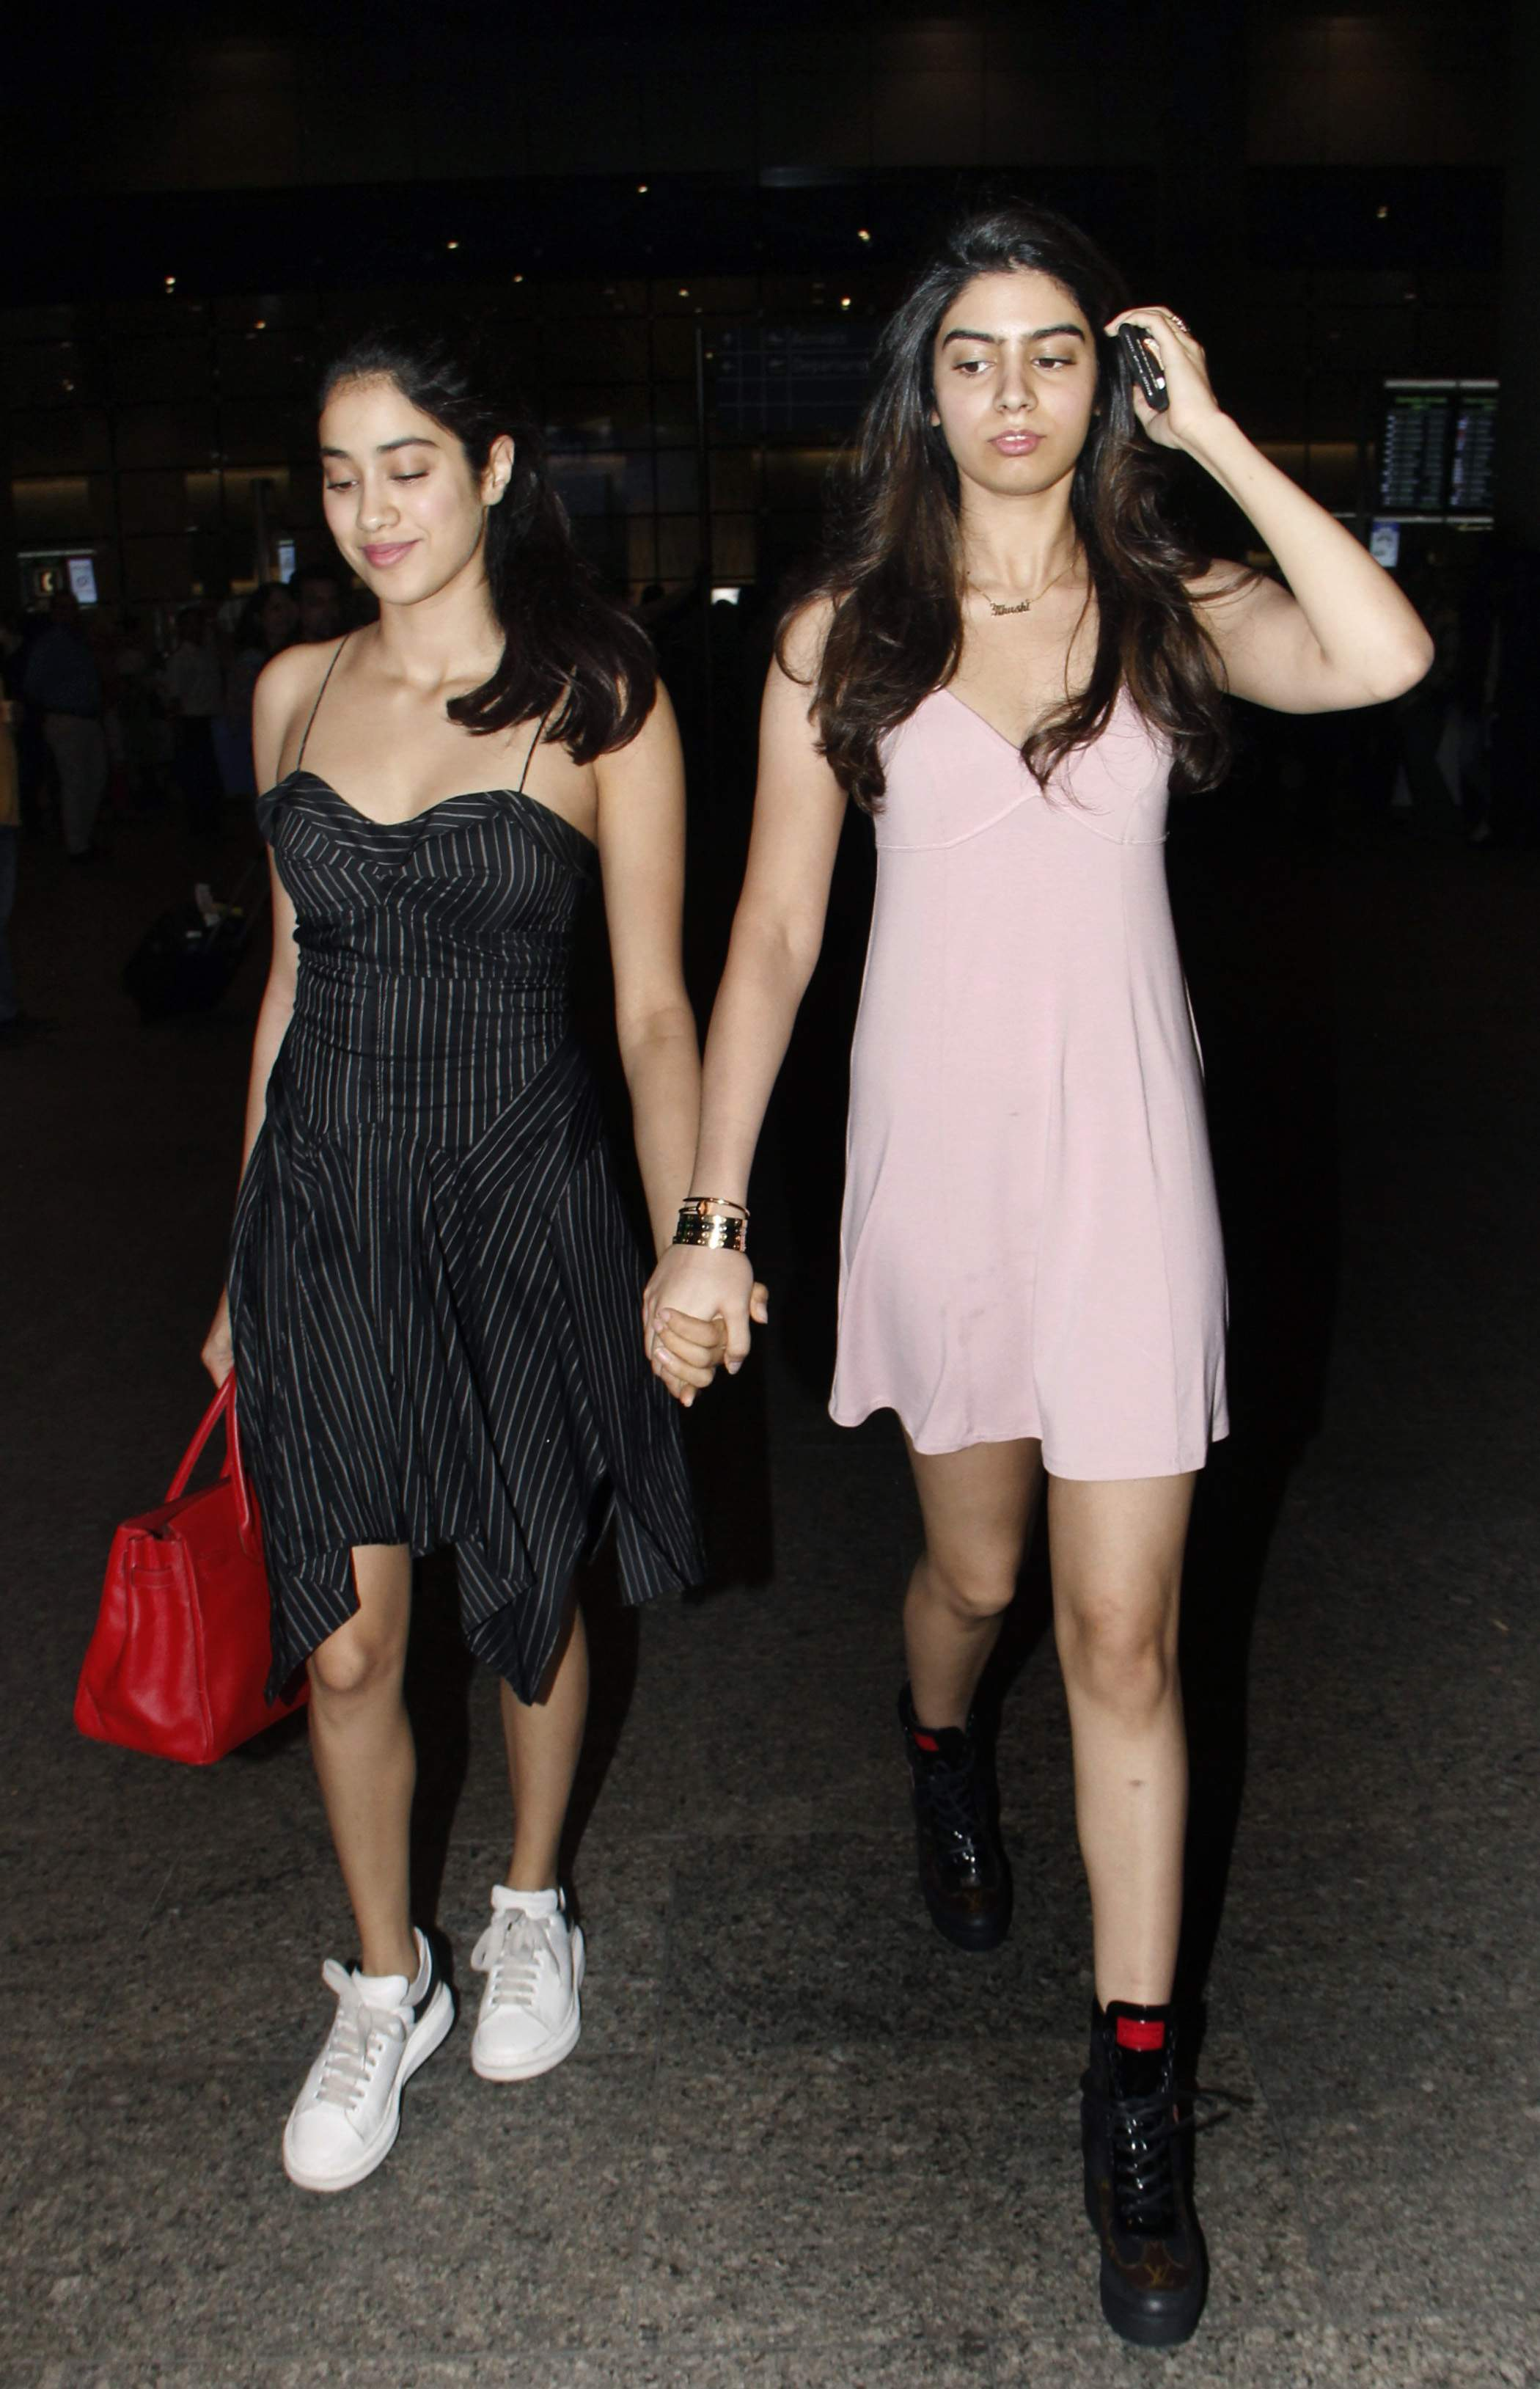 Jhanvi and Khushi Kapoor